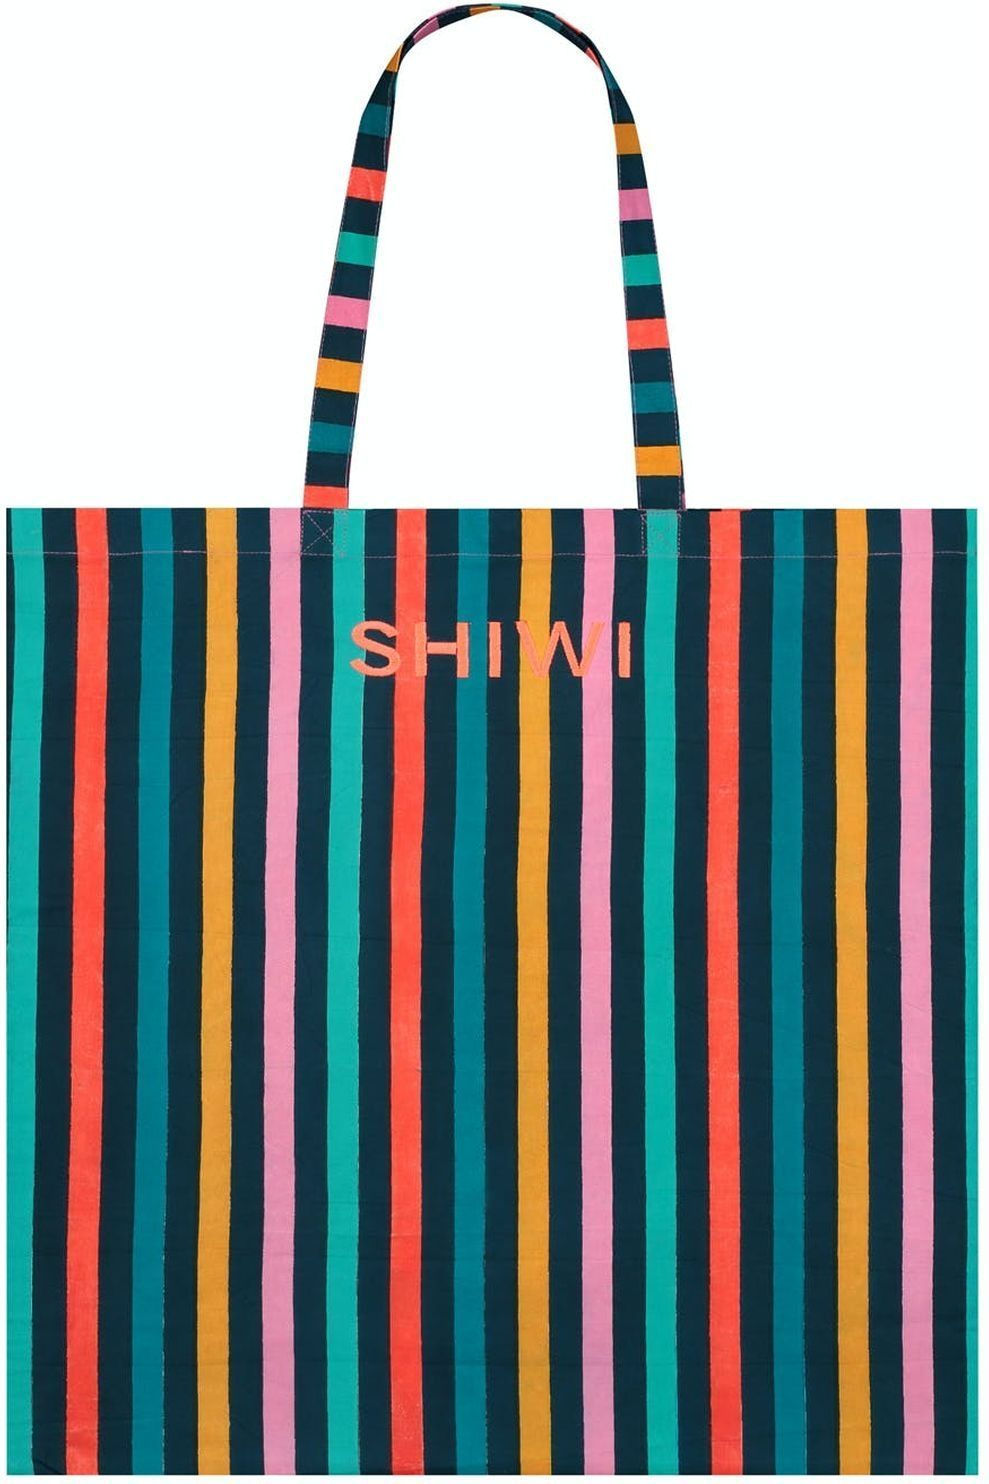 Shiwi Tas Sunkissed Beach Bag voor dames - Assorti - Gemengd